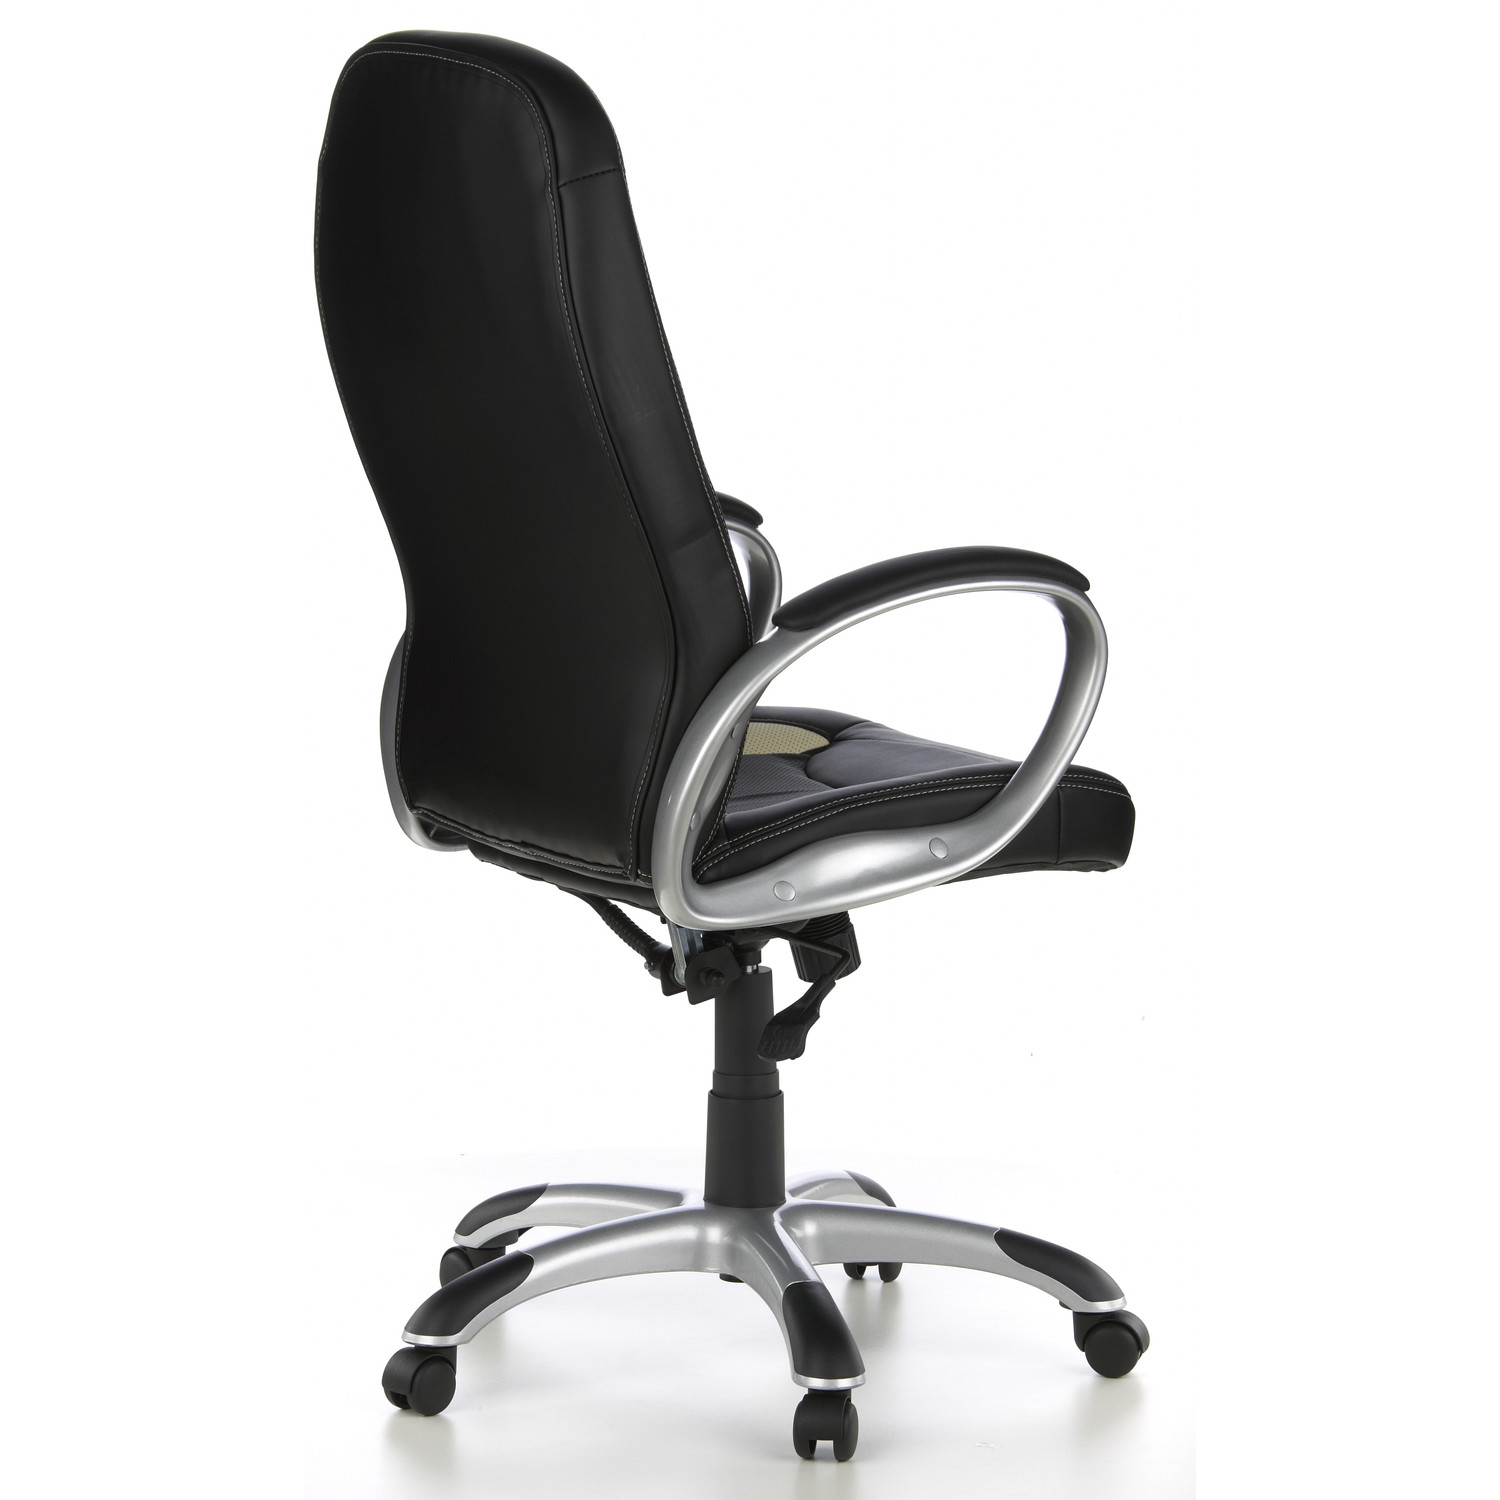 Silla exclusiva dise o deportivo racer 300 maxima for Rebajas sillas gaming